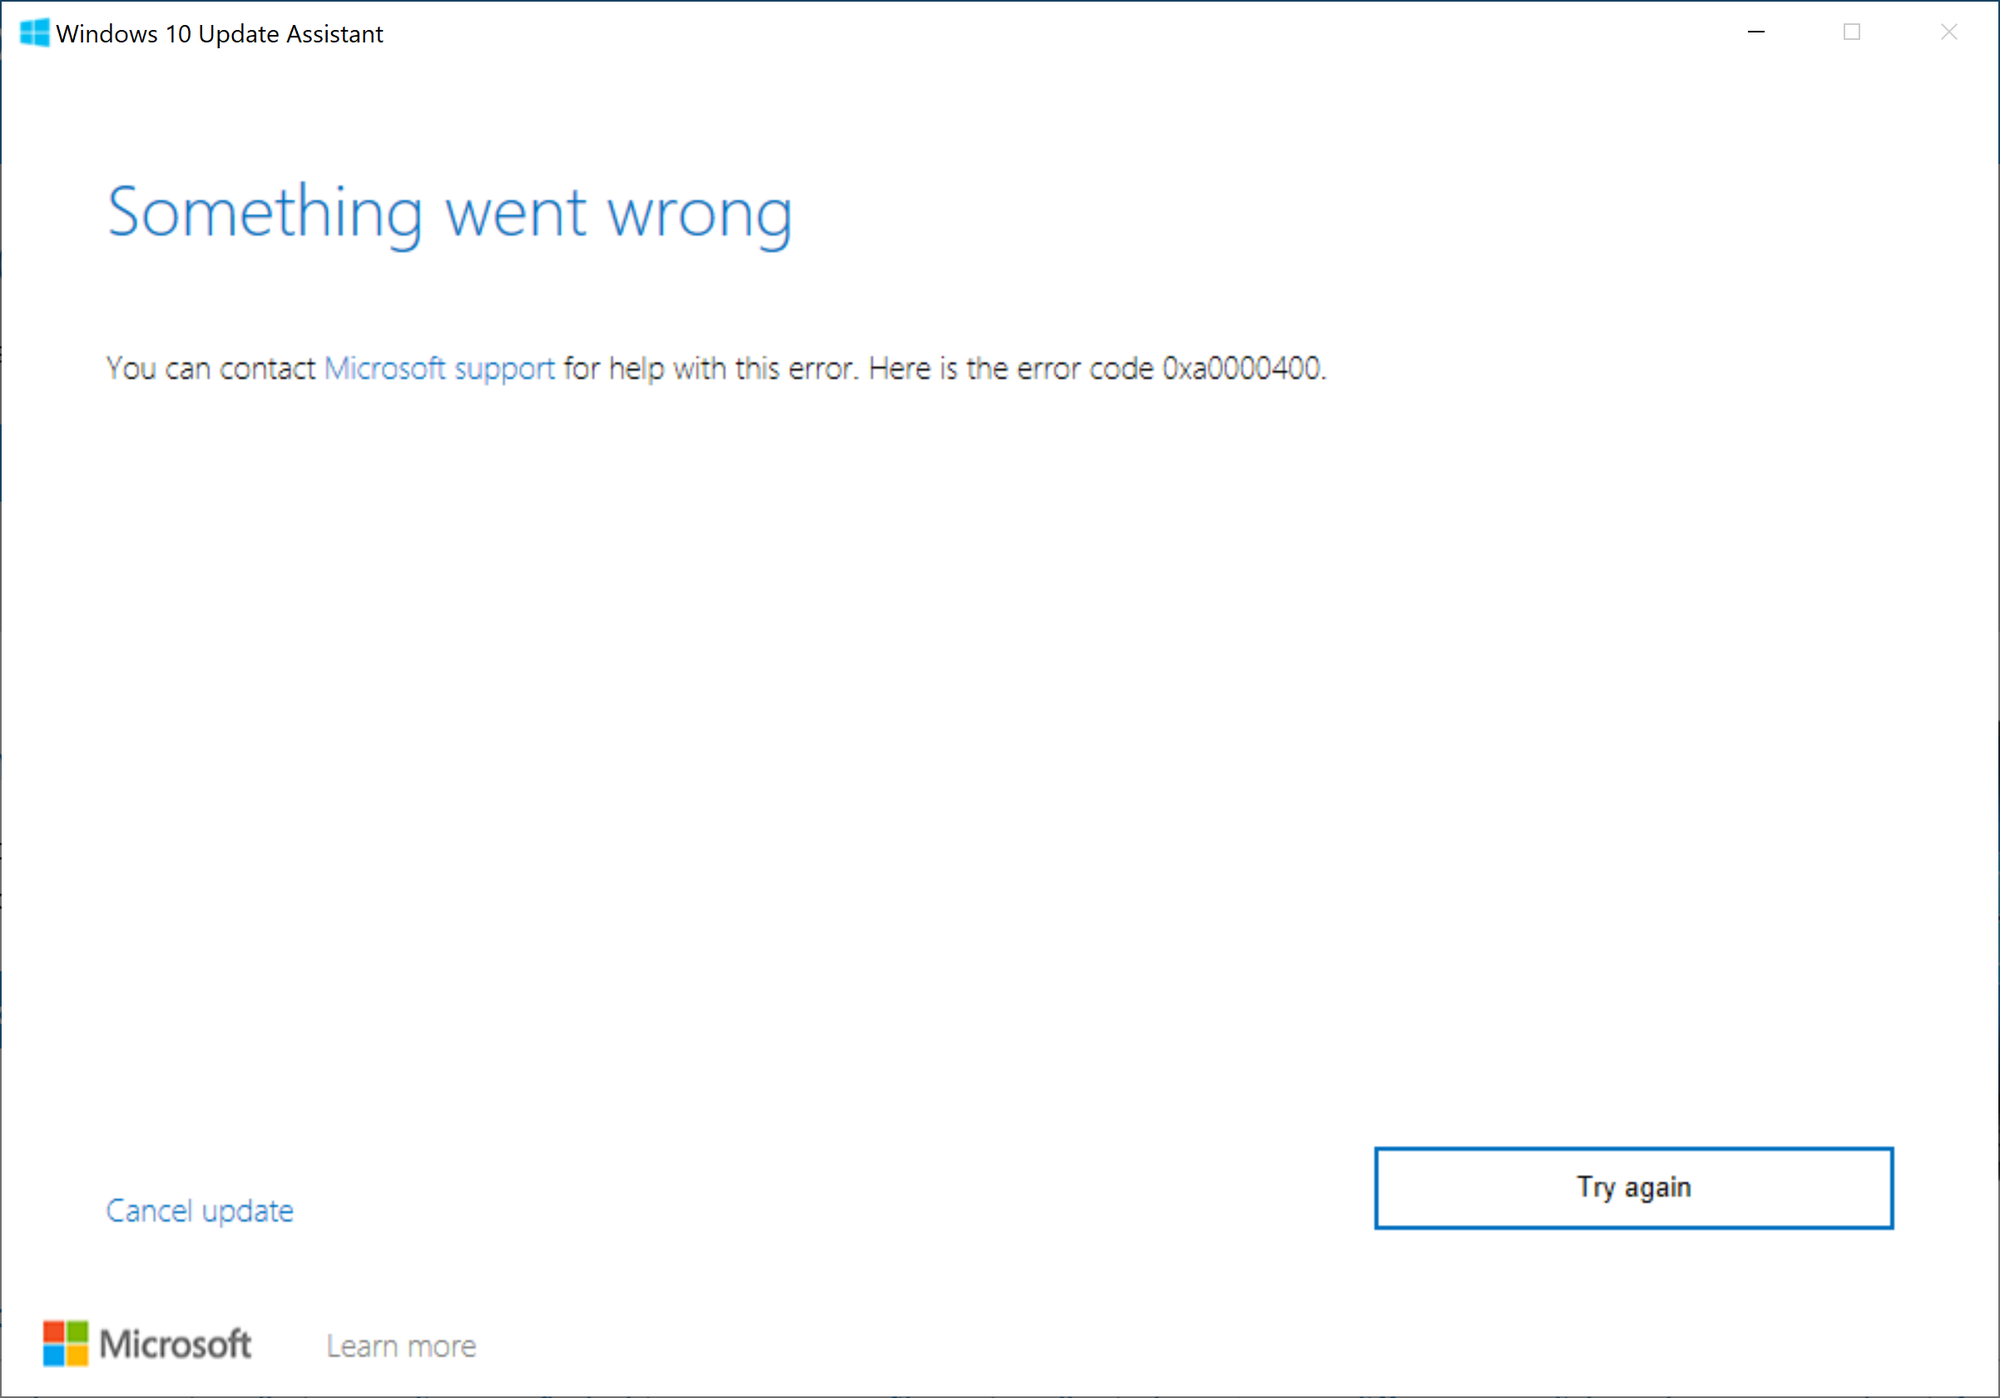 Windows 10 Pro for Workstation update failed with error code 0xa0000400 updating from 1809... 52d352bf-8950-45f0-a5ed-4e608af14cb1?upload=true.png